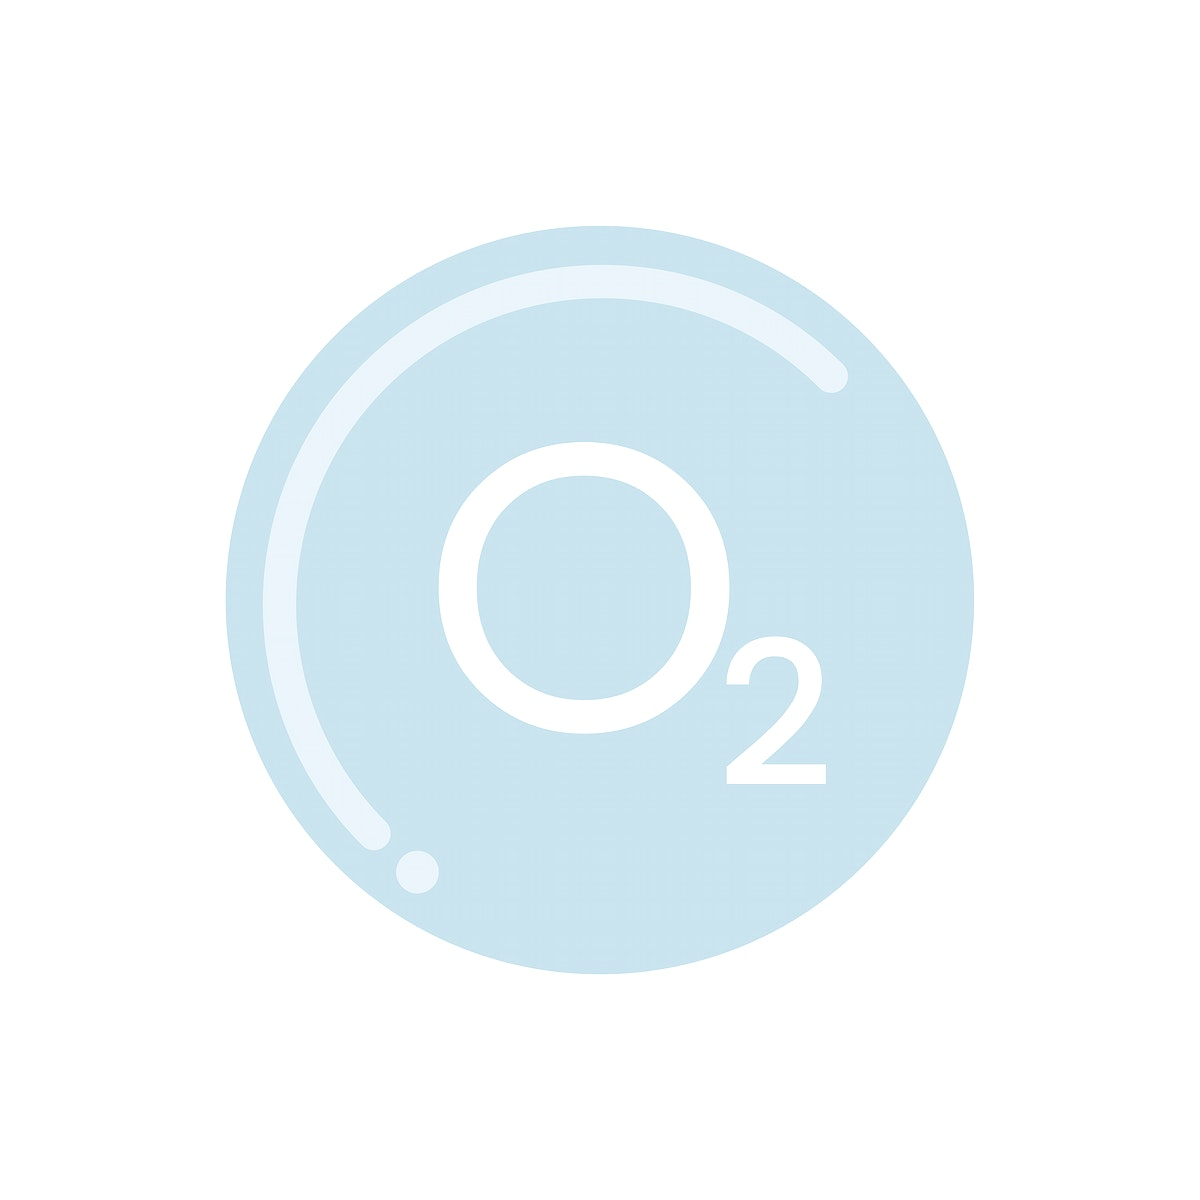 Bubble and O2 sign graphic illustration